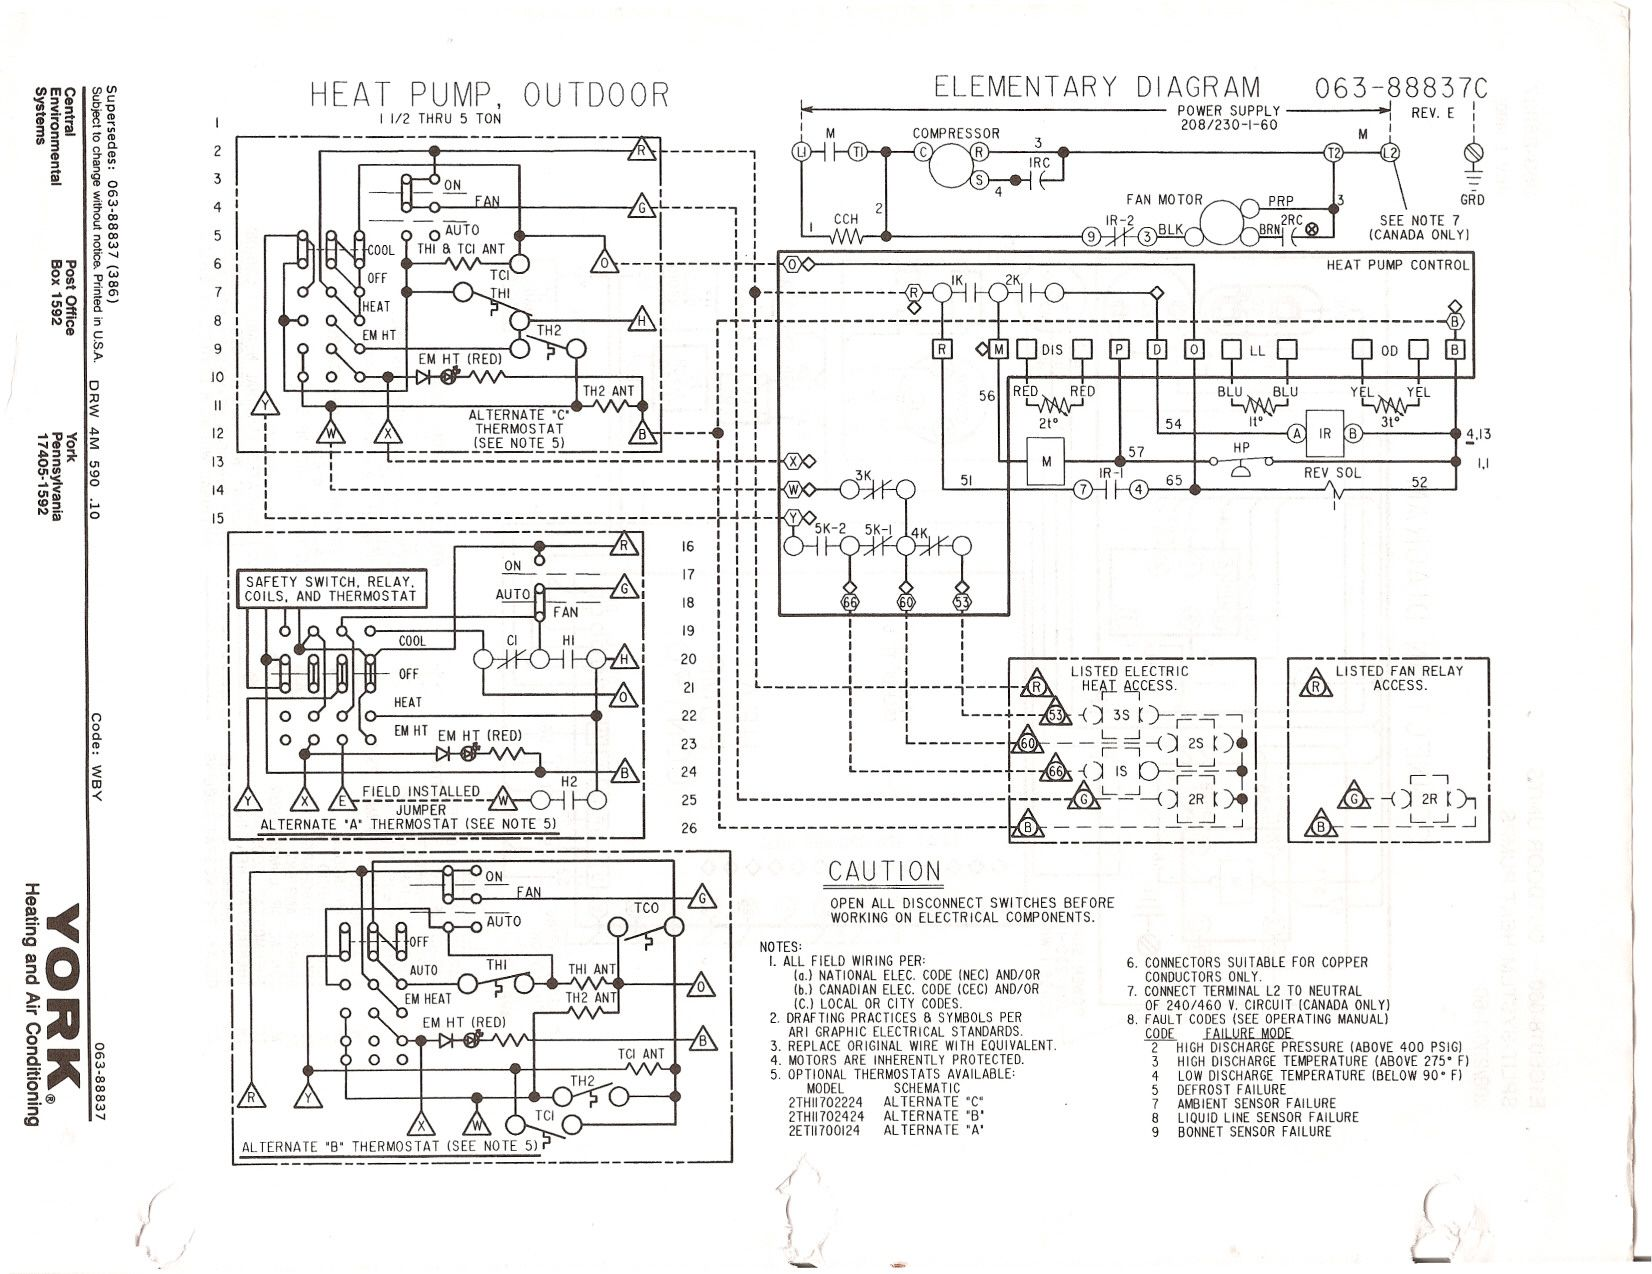 thermostat wiring troubleshooting choice image free troubleshooting examples circuit diagram humidifier garage heater [ 1652 x 1274 Pixel ]